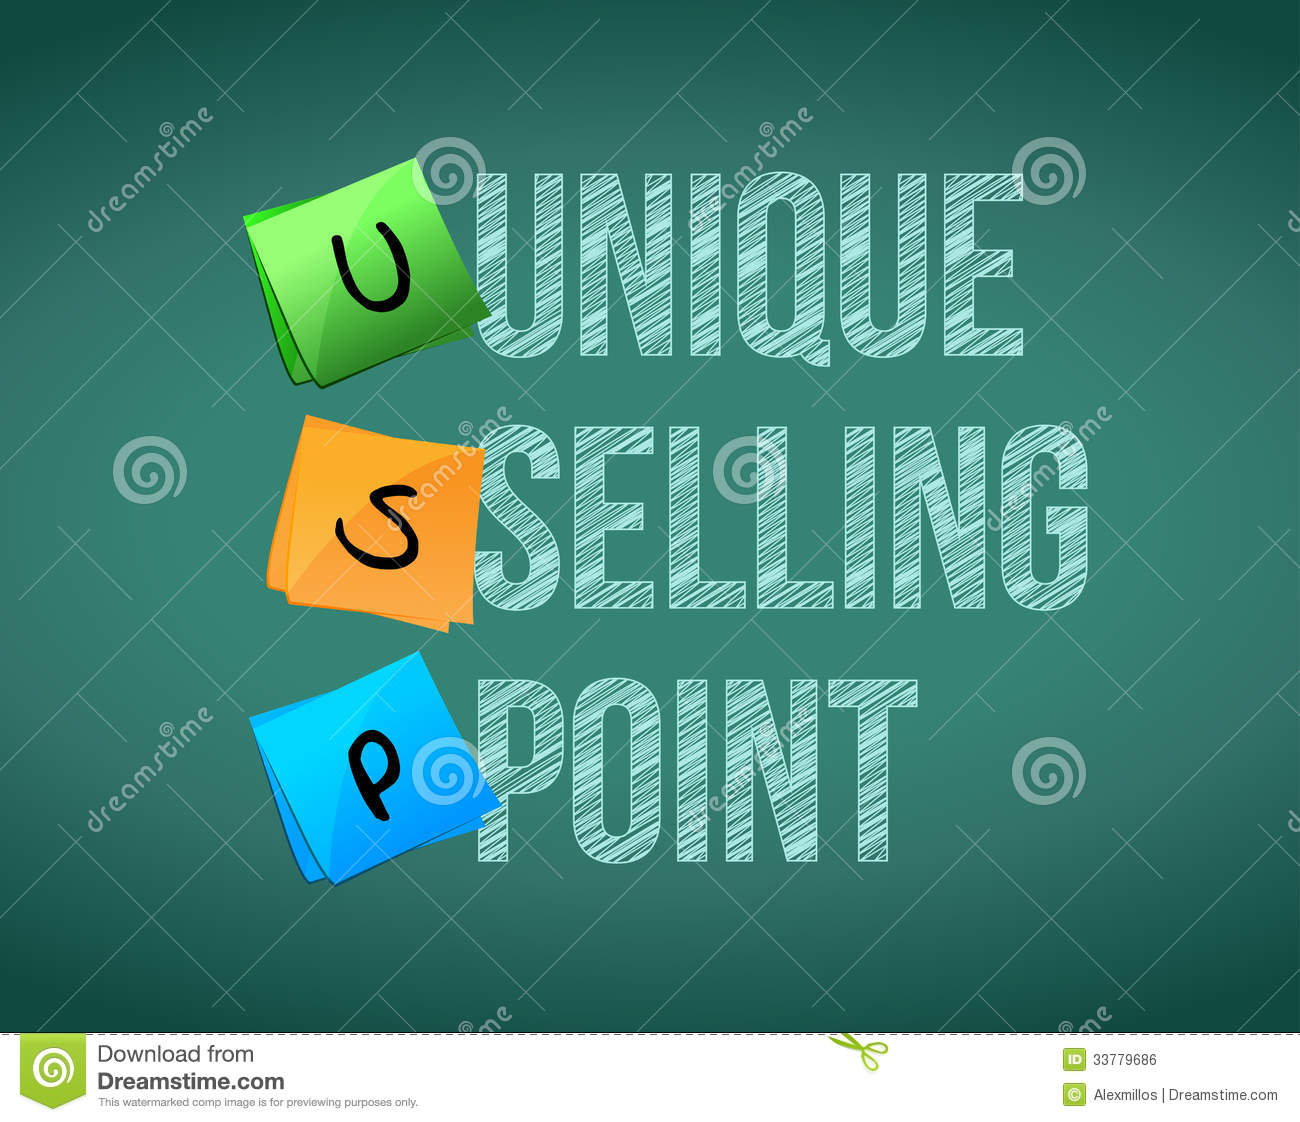 Unique Selling Point Concept Illustration Design Royalty ... Key To Success Clipart